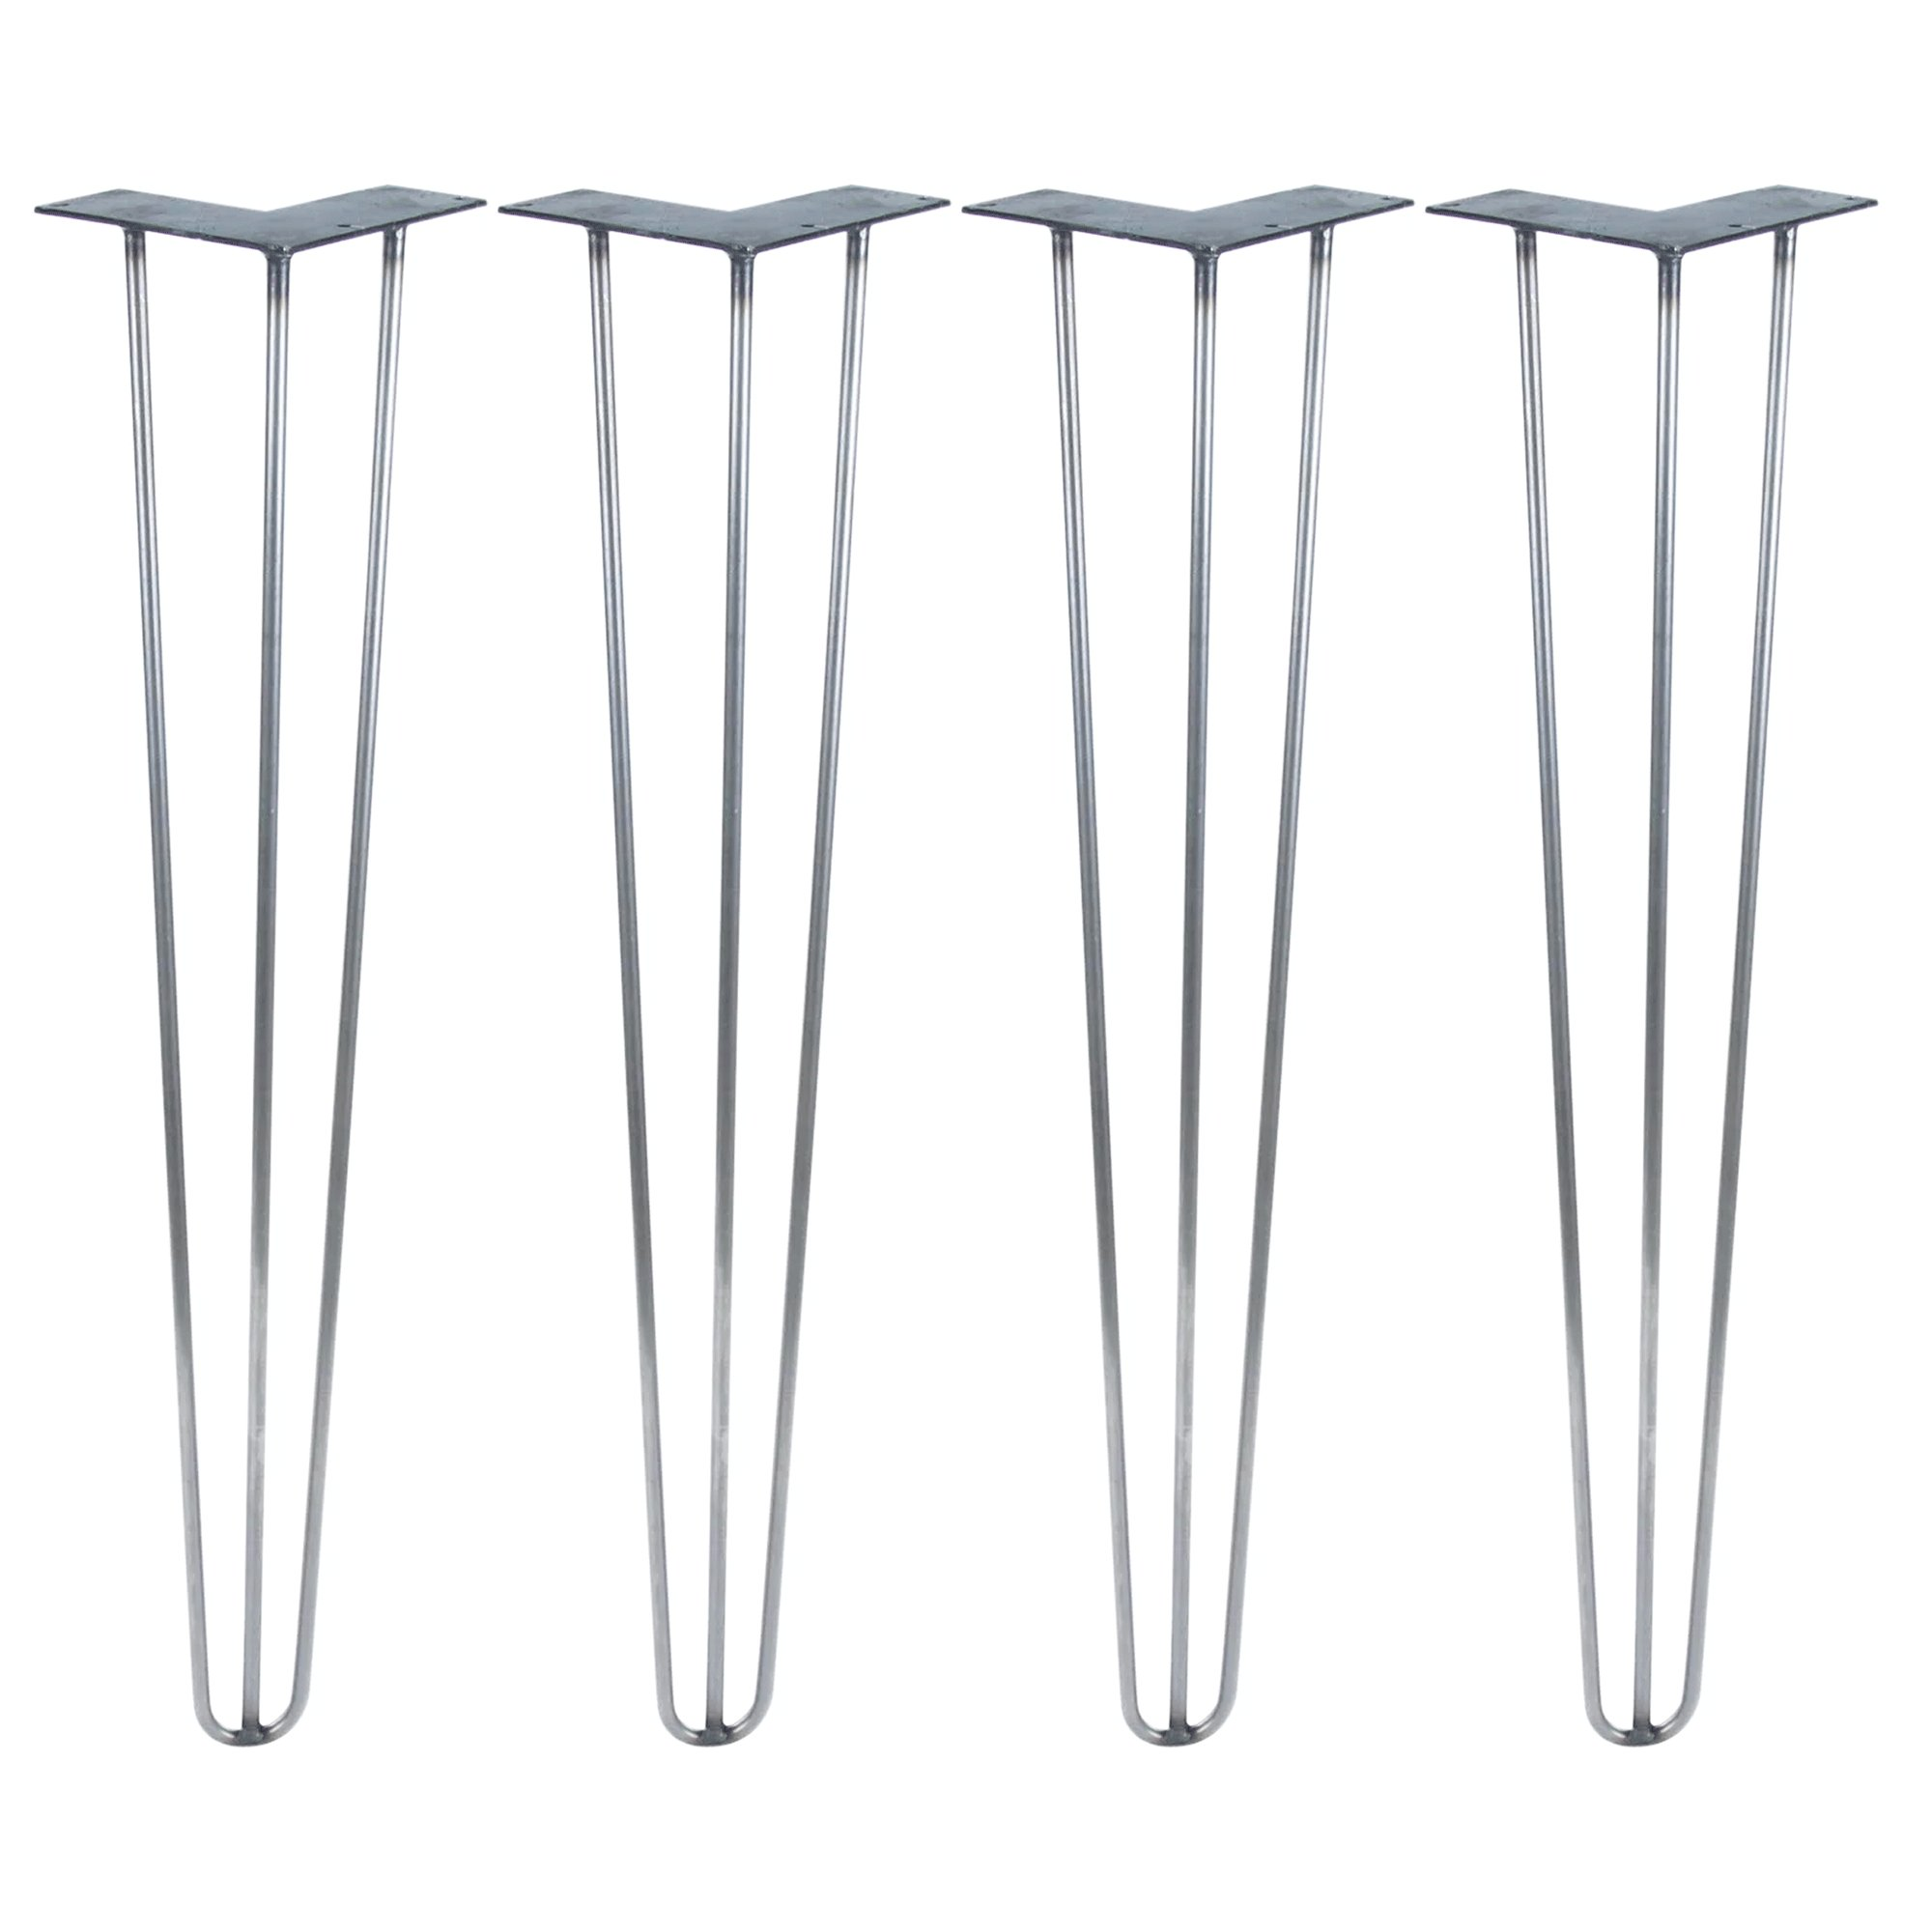 Set of Four 28'' 3-Rod Hairpin Legs - 3/8'' or 1/2'' Diameter - Made In The USA - Mid Century Modern - Available in Raw Steel, Black or White (1/2'' Diameter x Jet Black Satin) by DIY Hairpin Legs